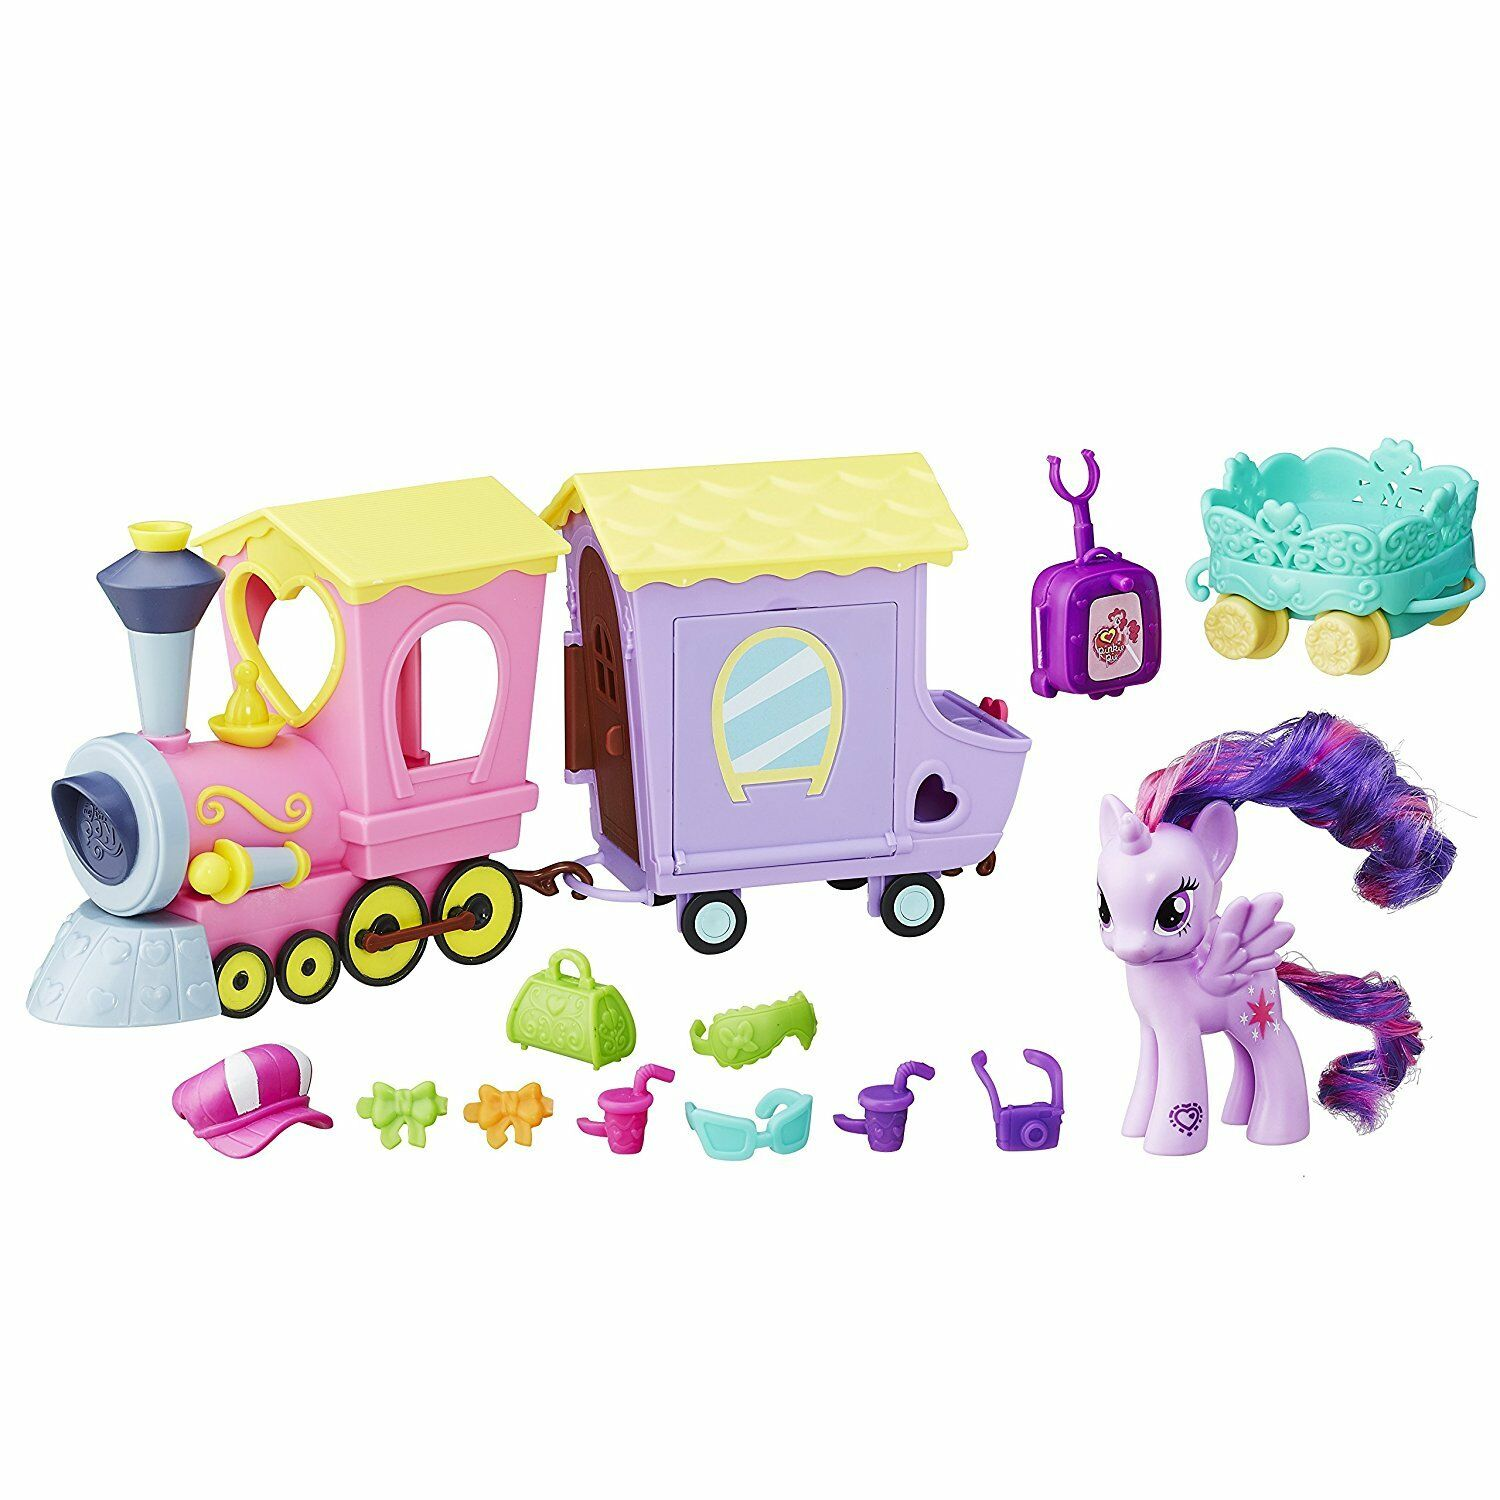 My Little Pony Explore Equestria Friendship Express Train Ages 3+ New Toy Girls